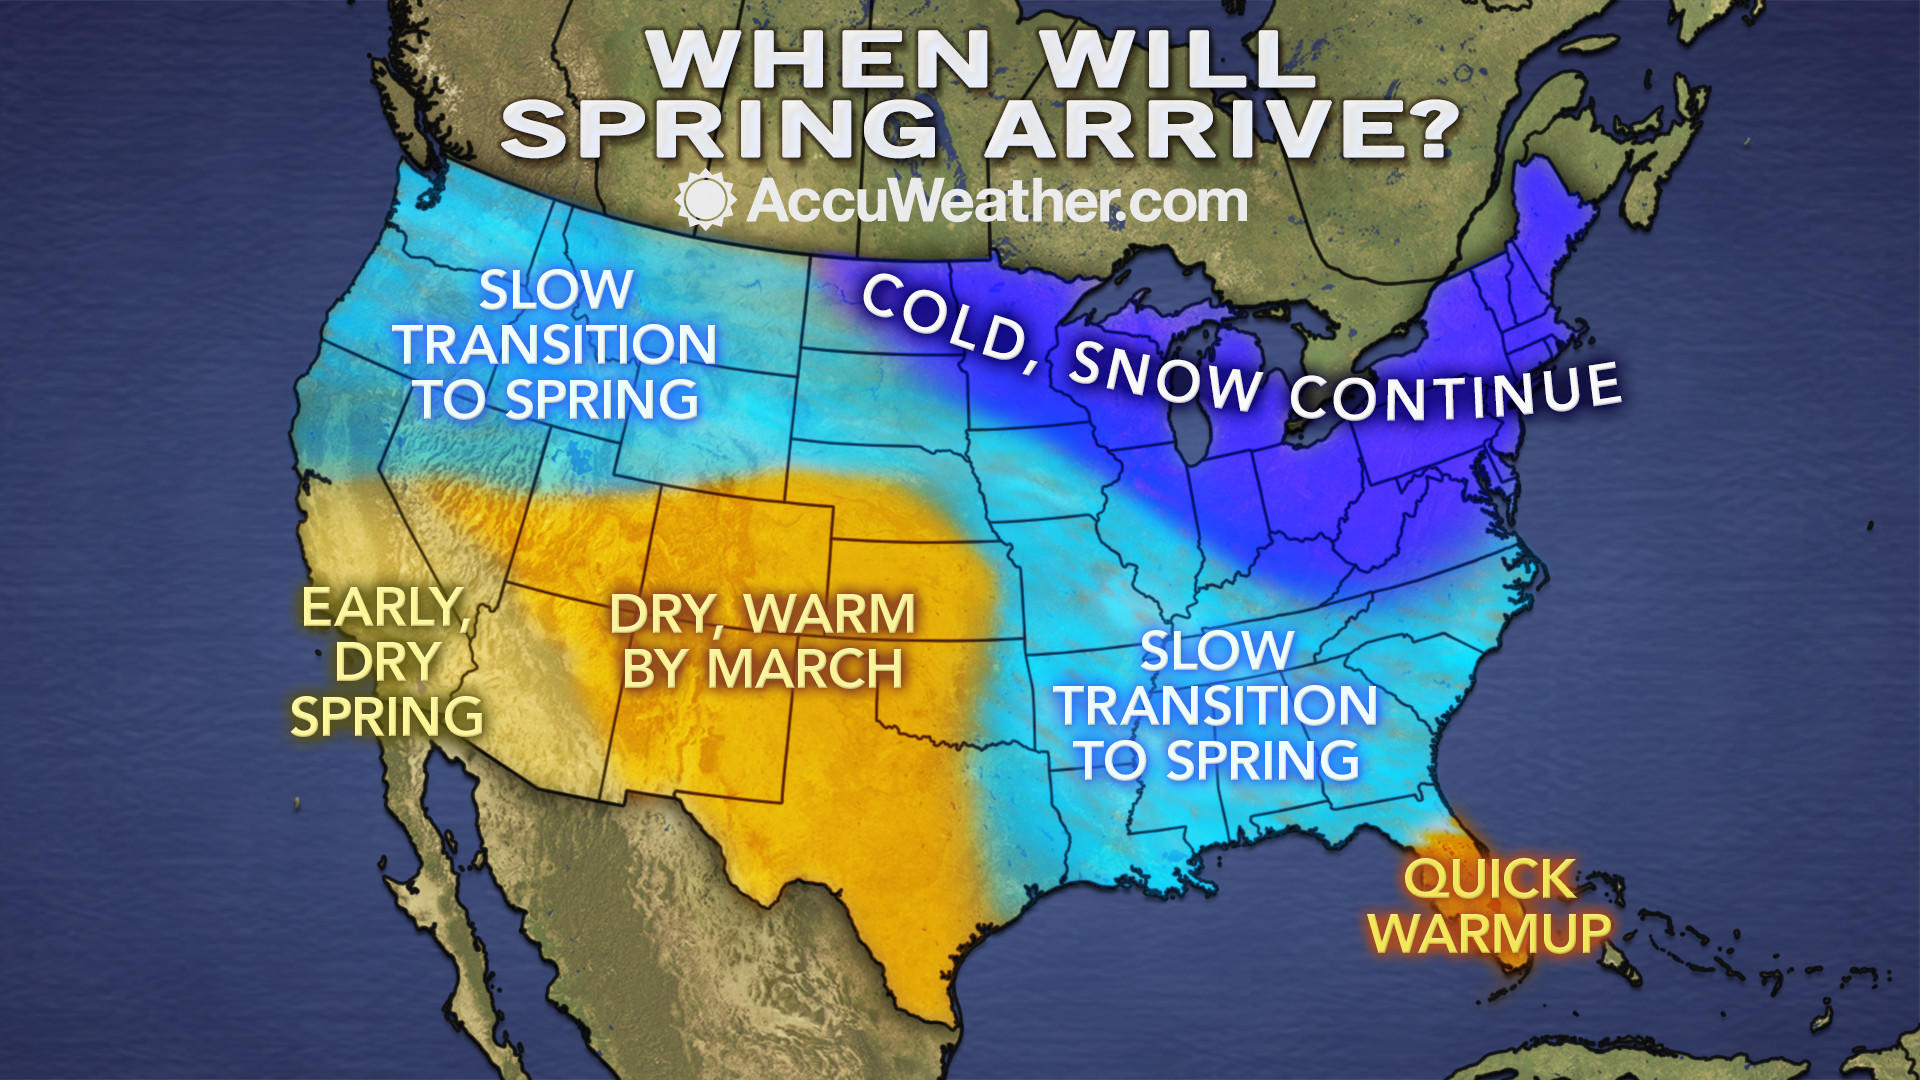 AccuWeather.com predicts that winter weather will drag into March in the mid-Atlantic and Northeast.